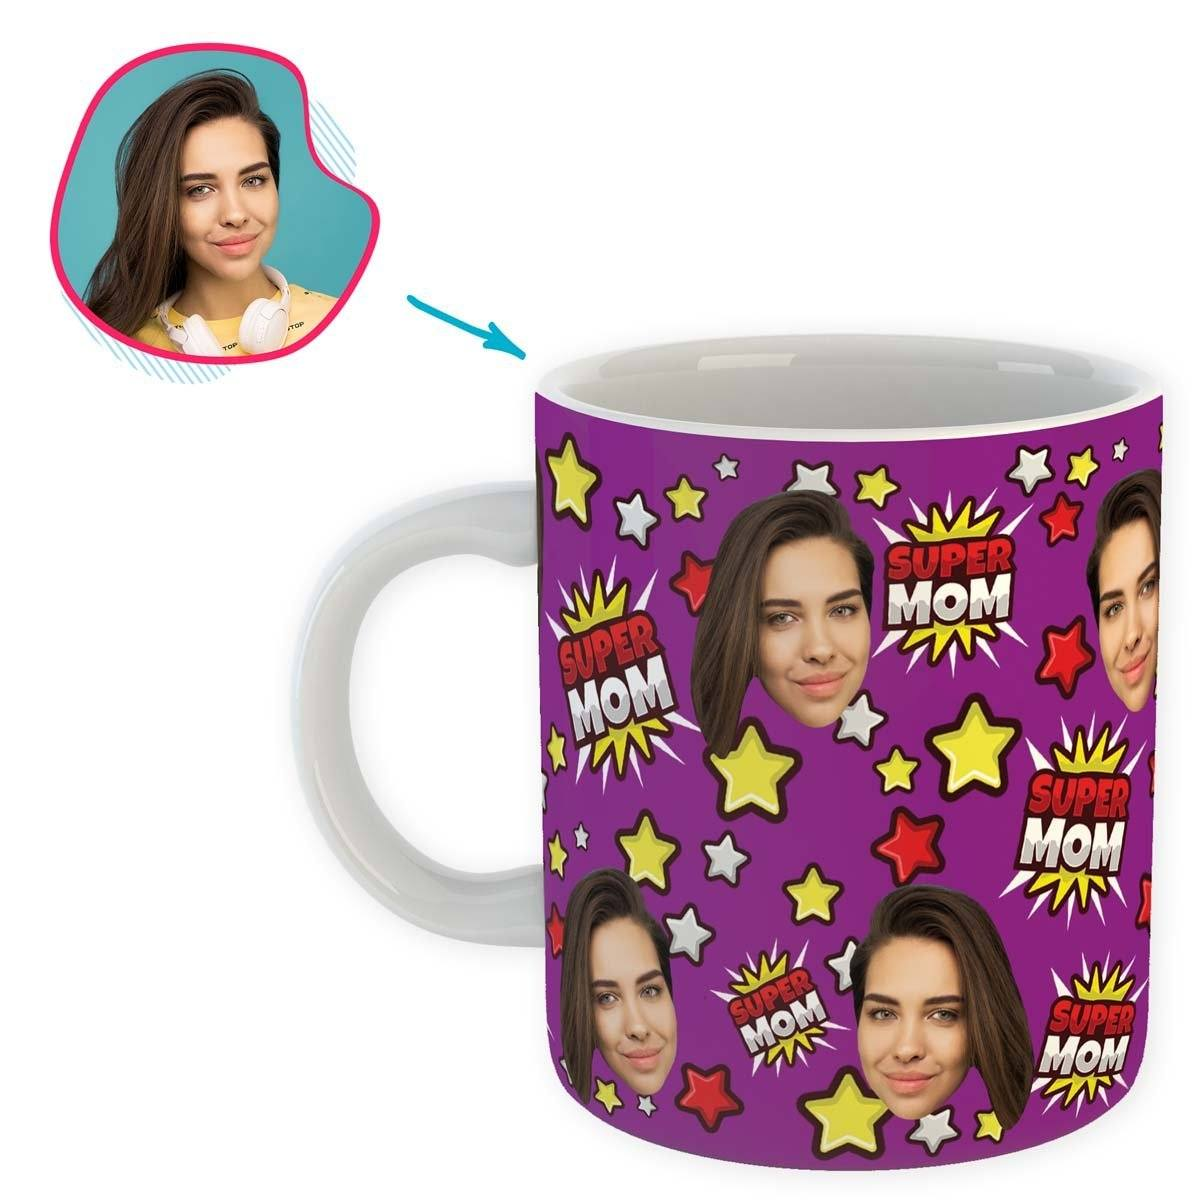 purple Super Mom mug personalized with photo of face printed on it